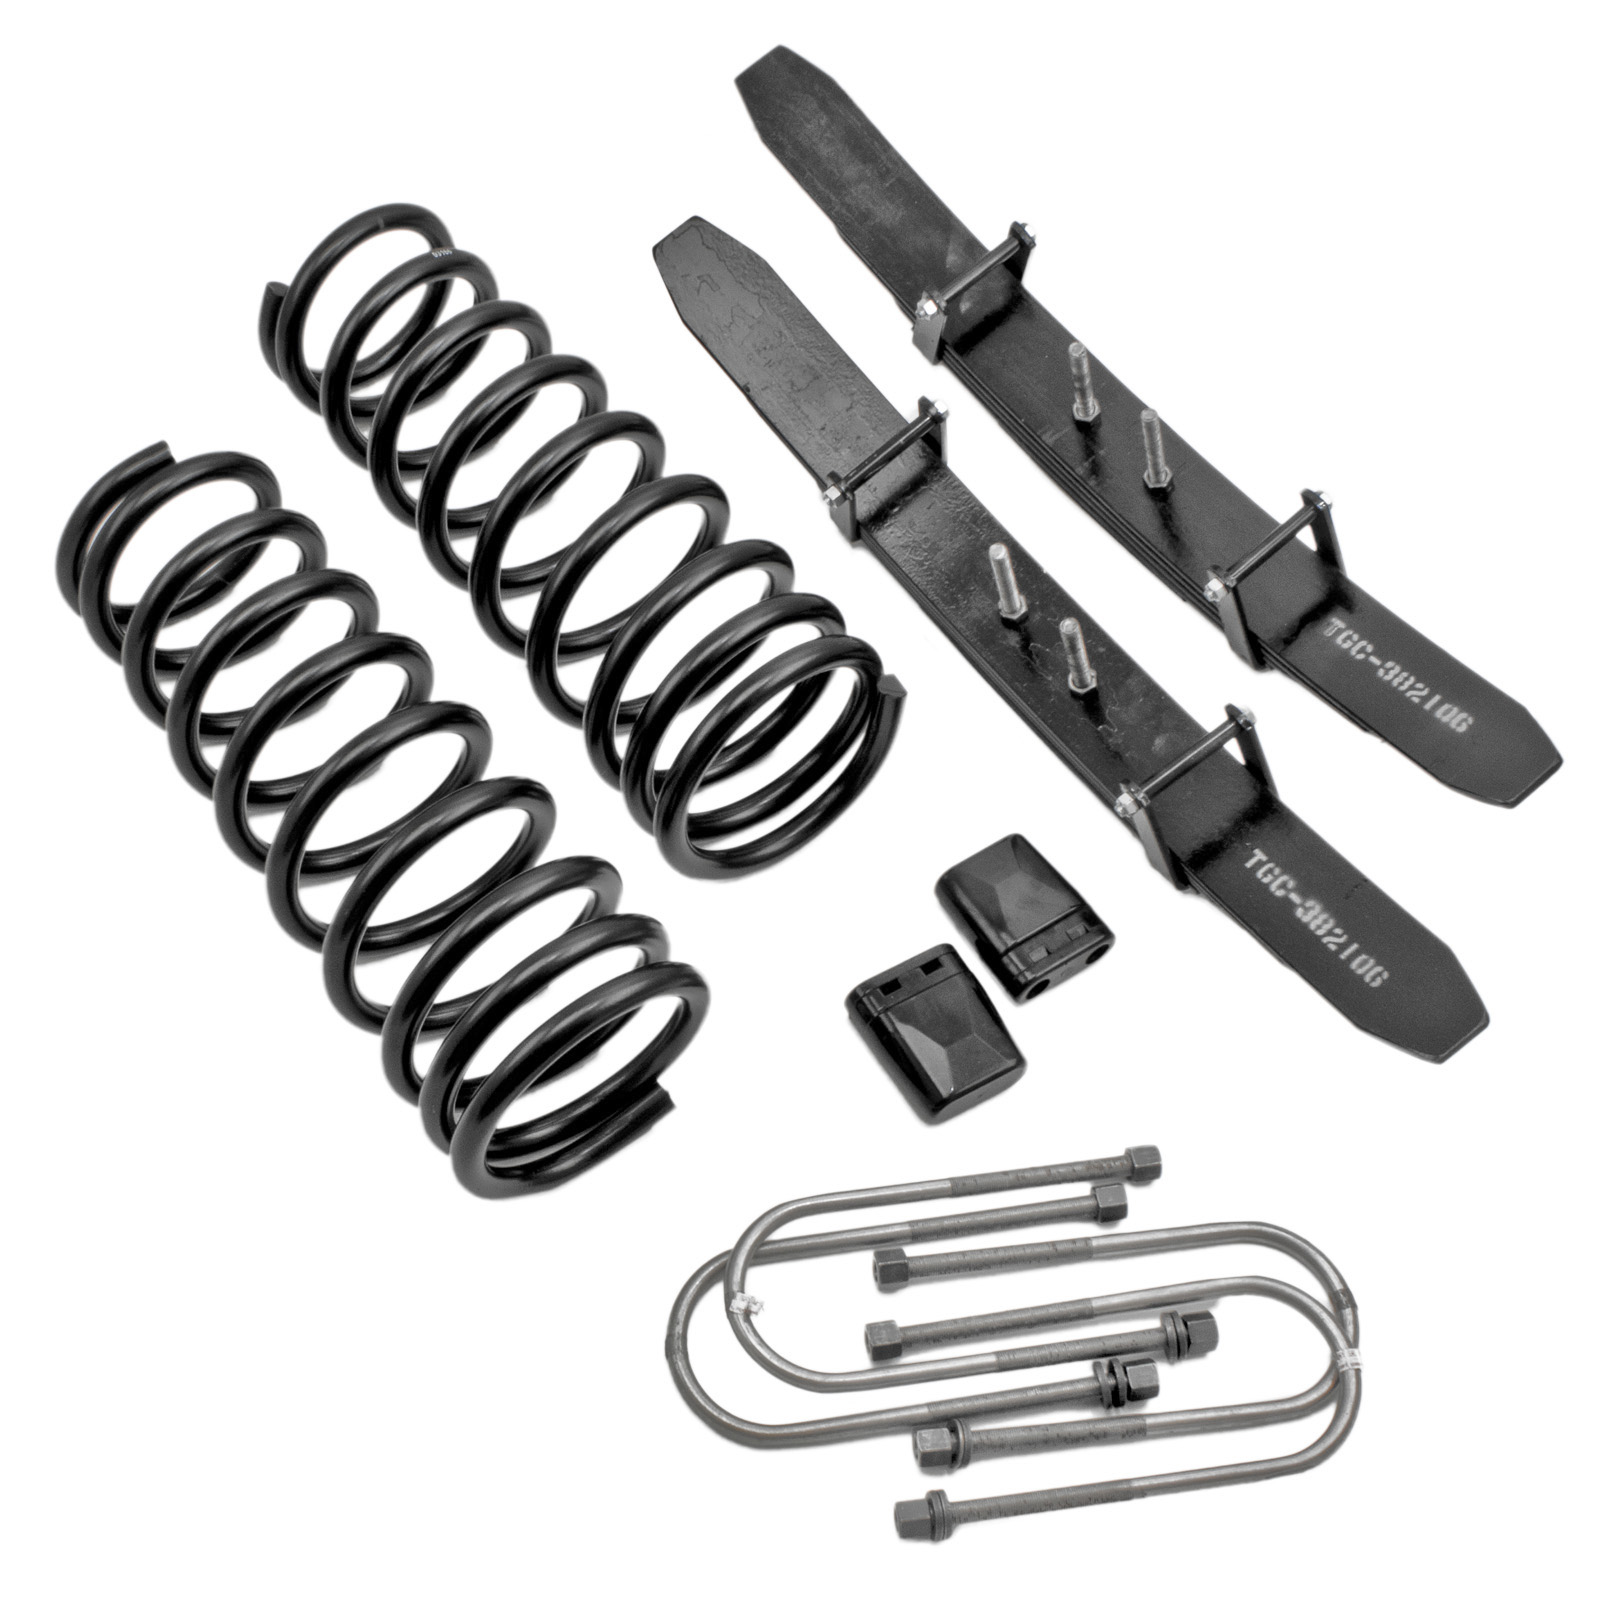 Dodge Lift Kit For 2006 Dodge Ram 3500 Truck Lift Kits